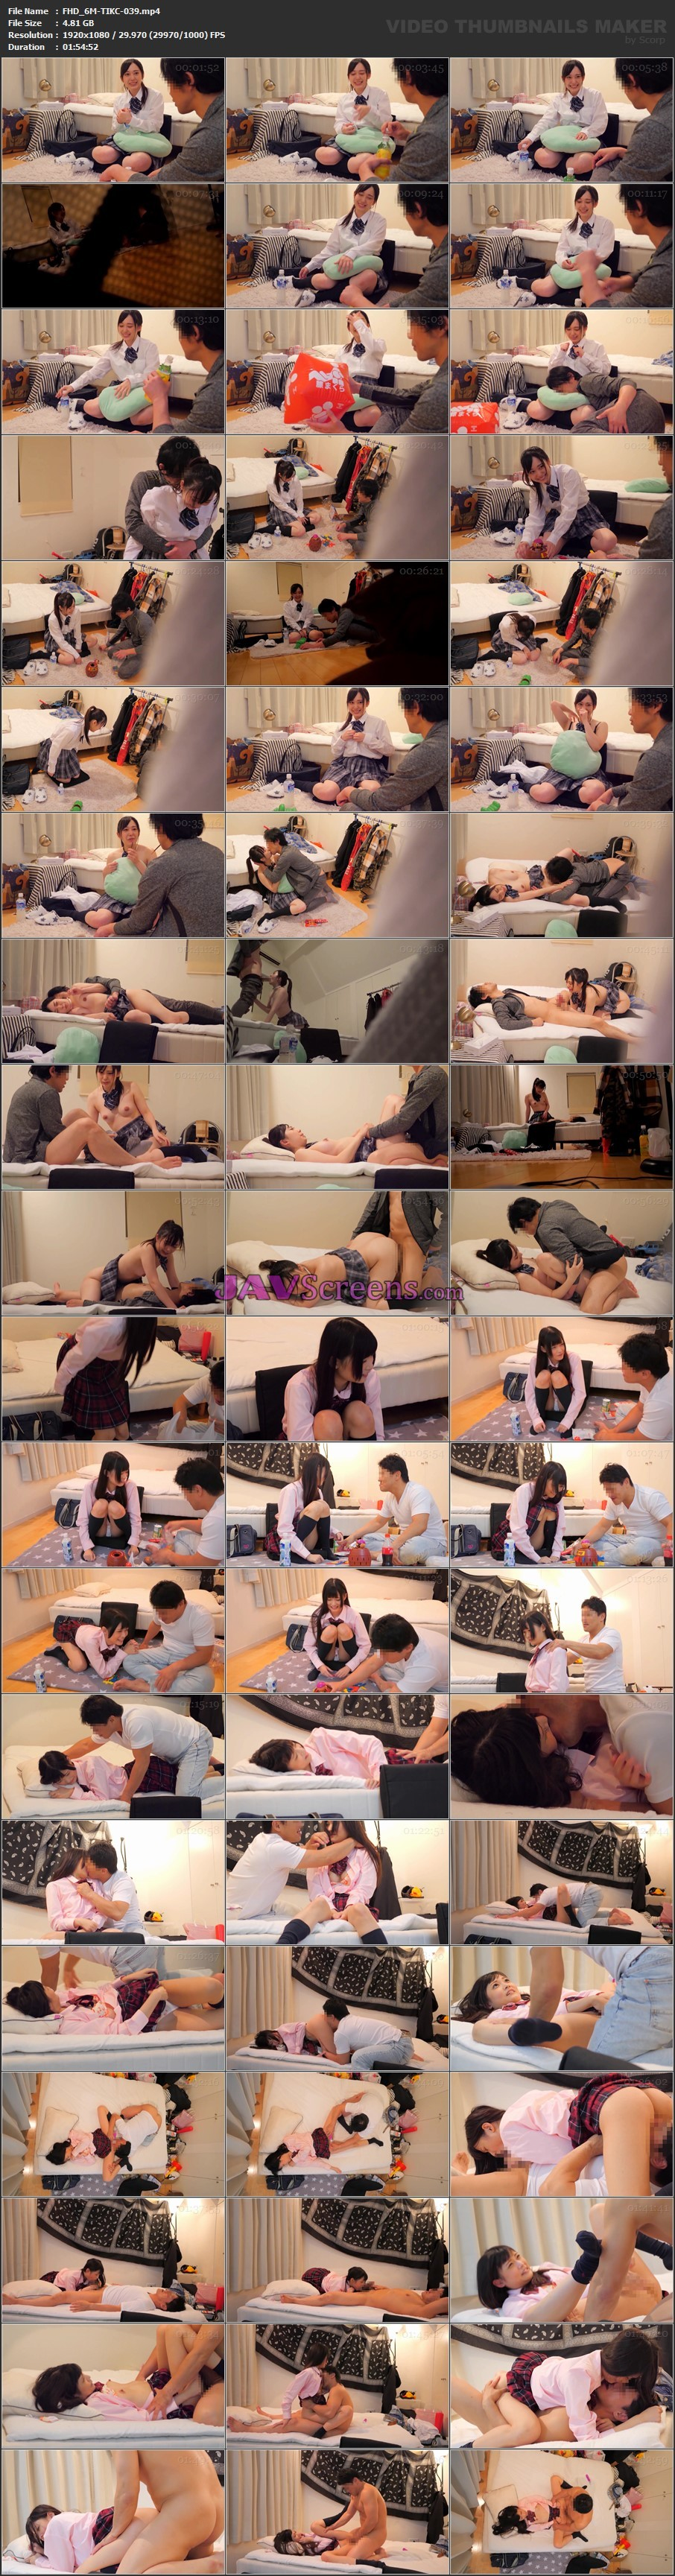 TIKC-039.jpg - JAV Screenshot